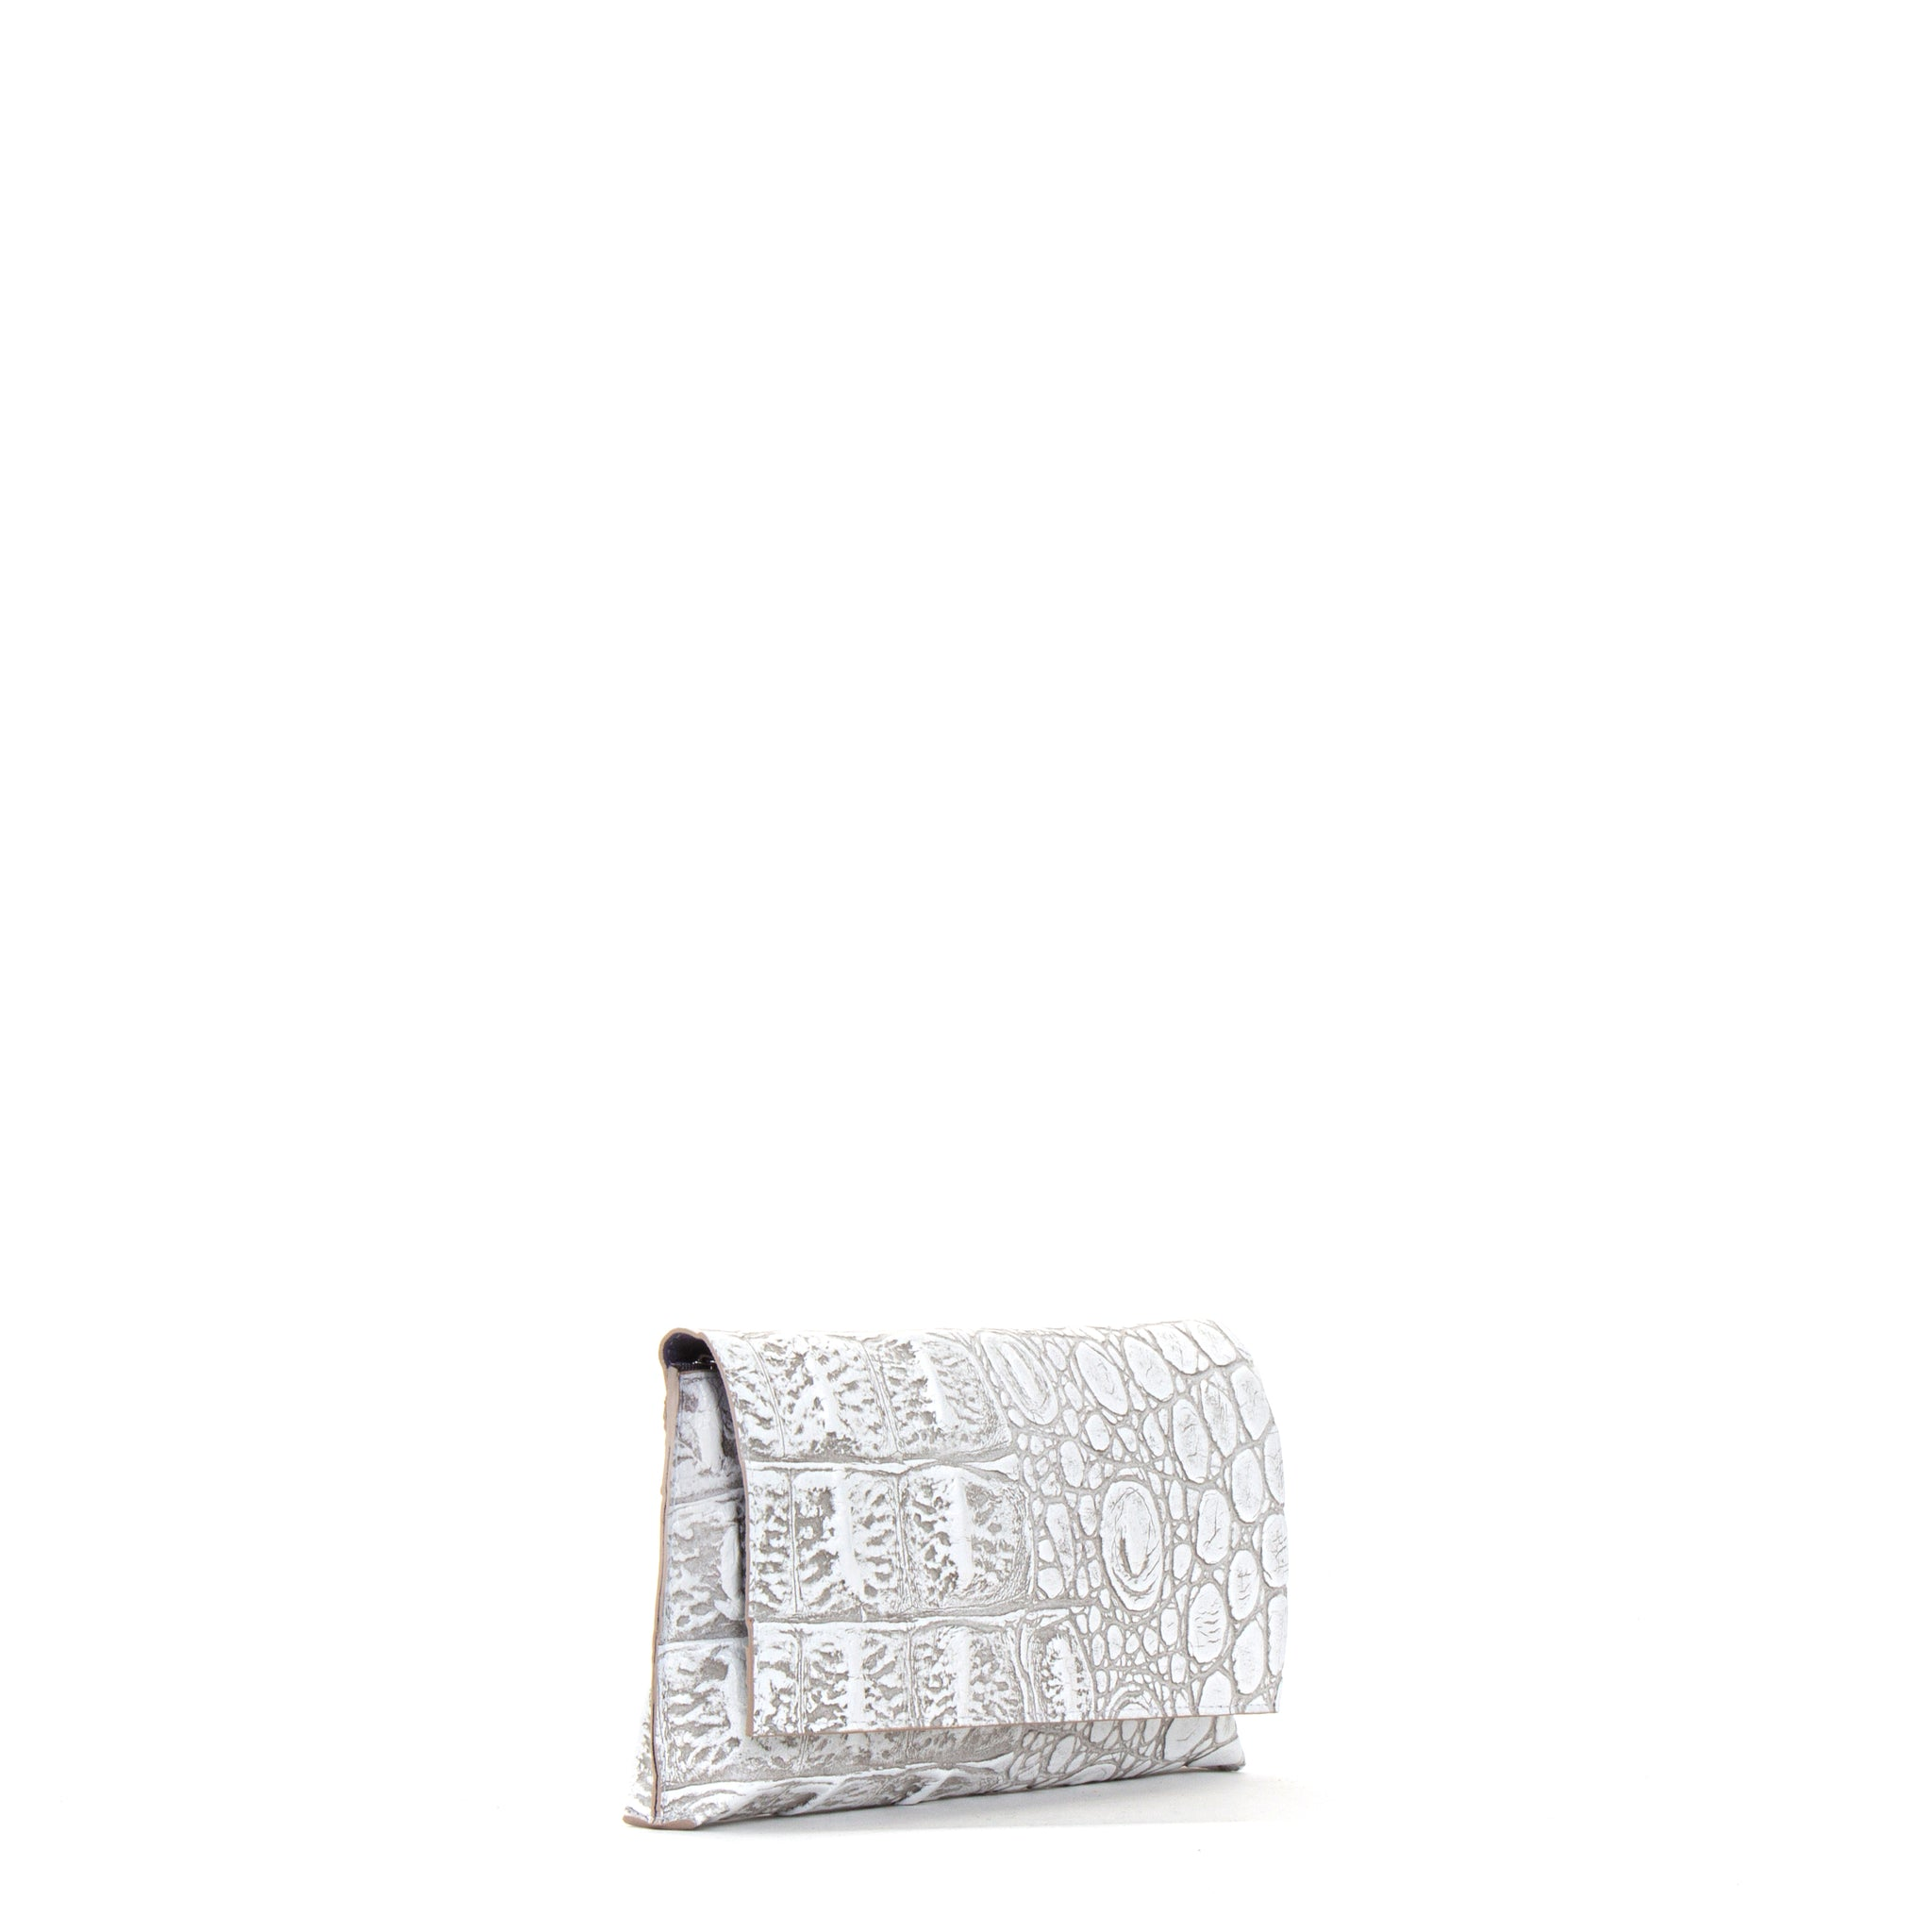 FOLDOVER CLUTCH CHALK EMBOSSED MONSTER CROC